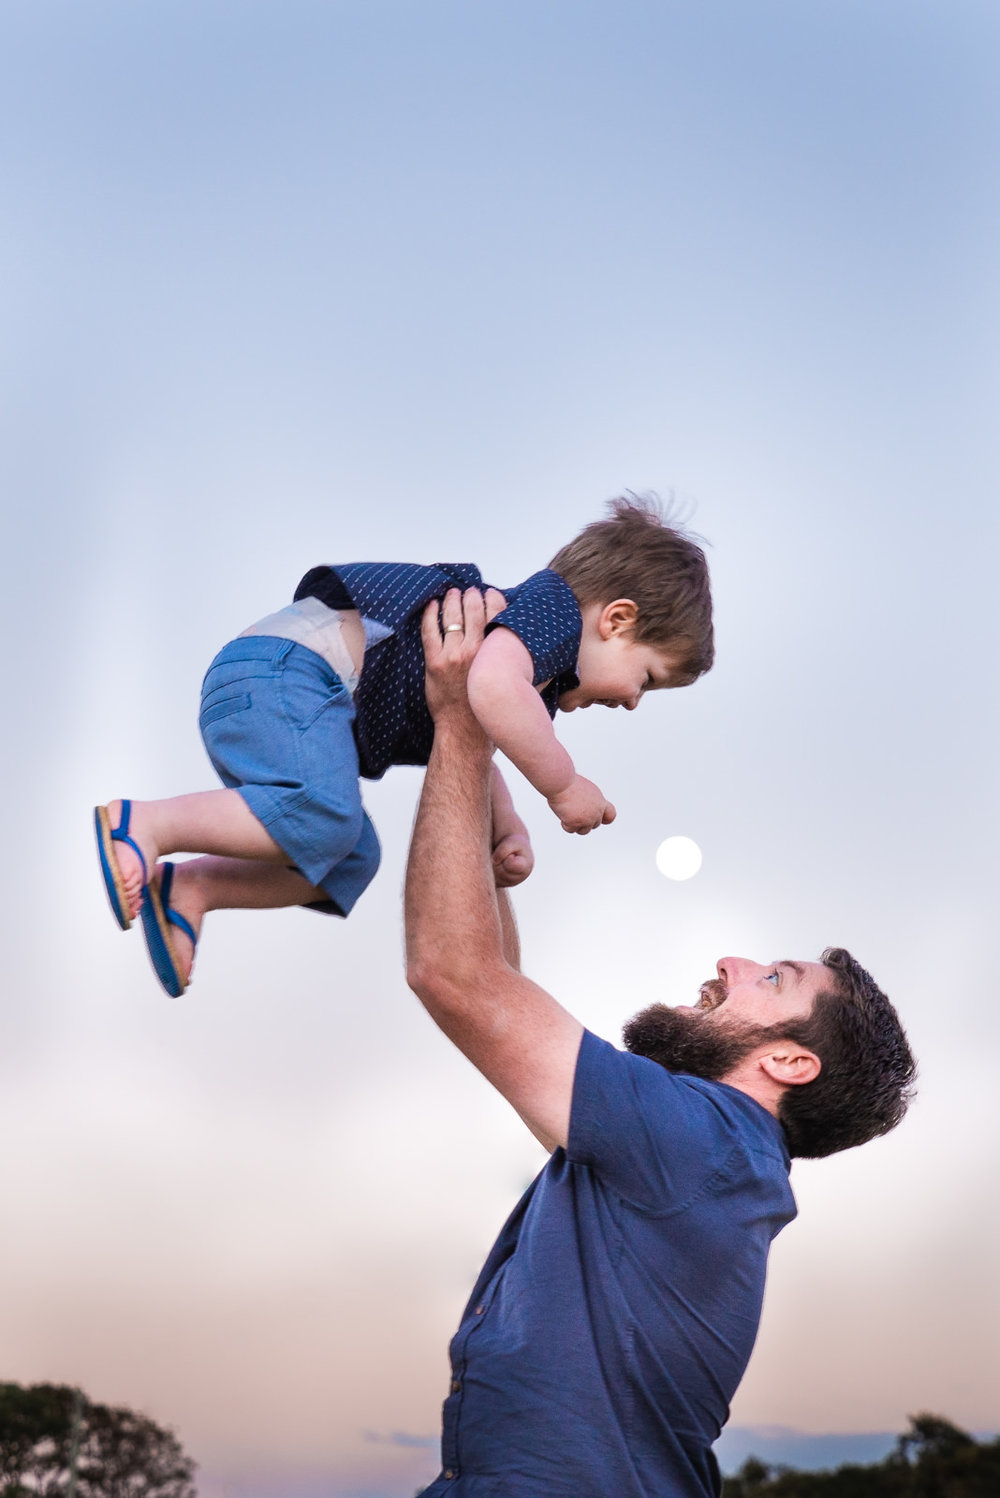 father throwing son in the air with the moon in background during sunset family photo session at maleny